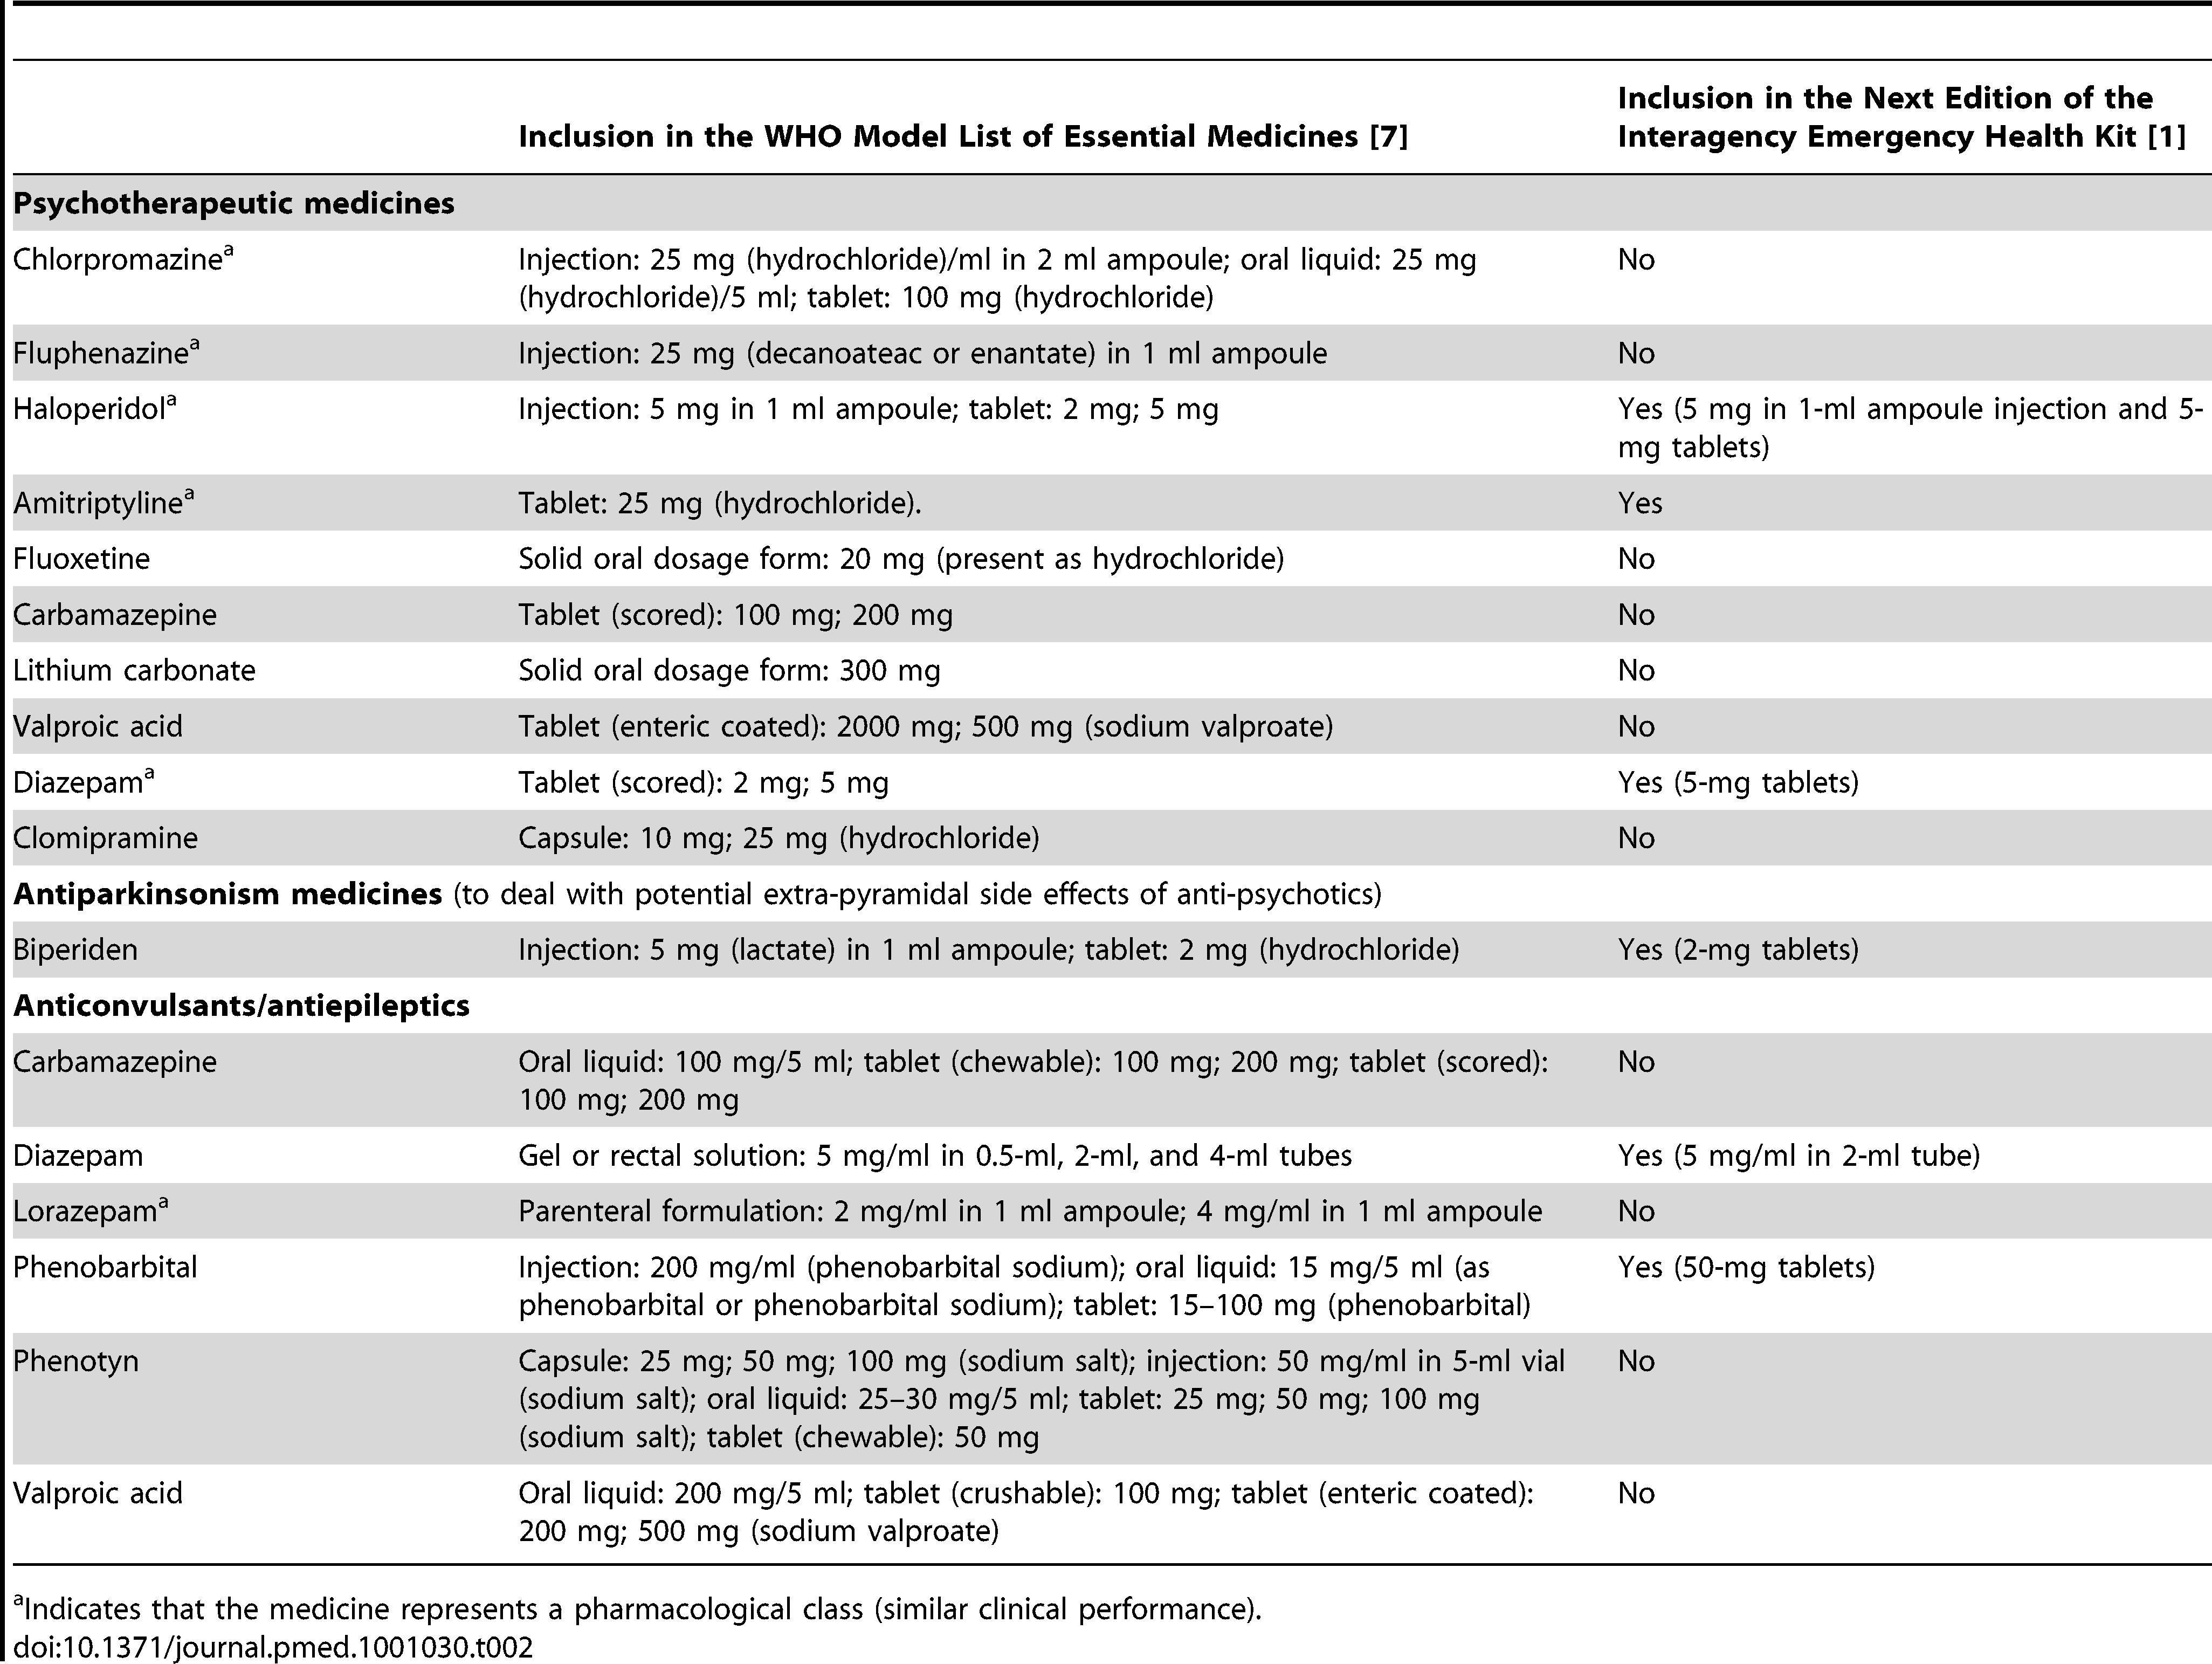 The WHO Model List of Essential Medicines and the Interagency Emergency Health Kit (IEHK).